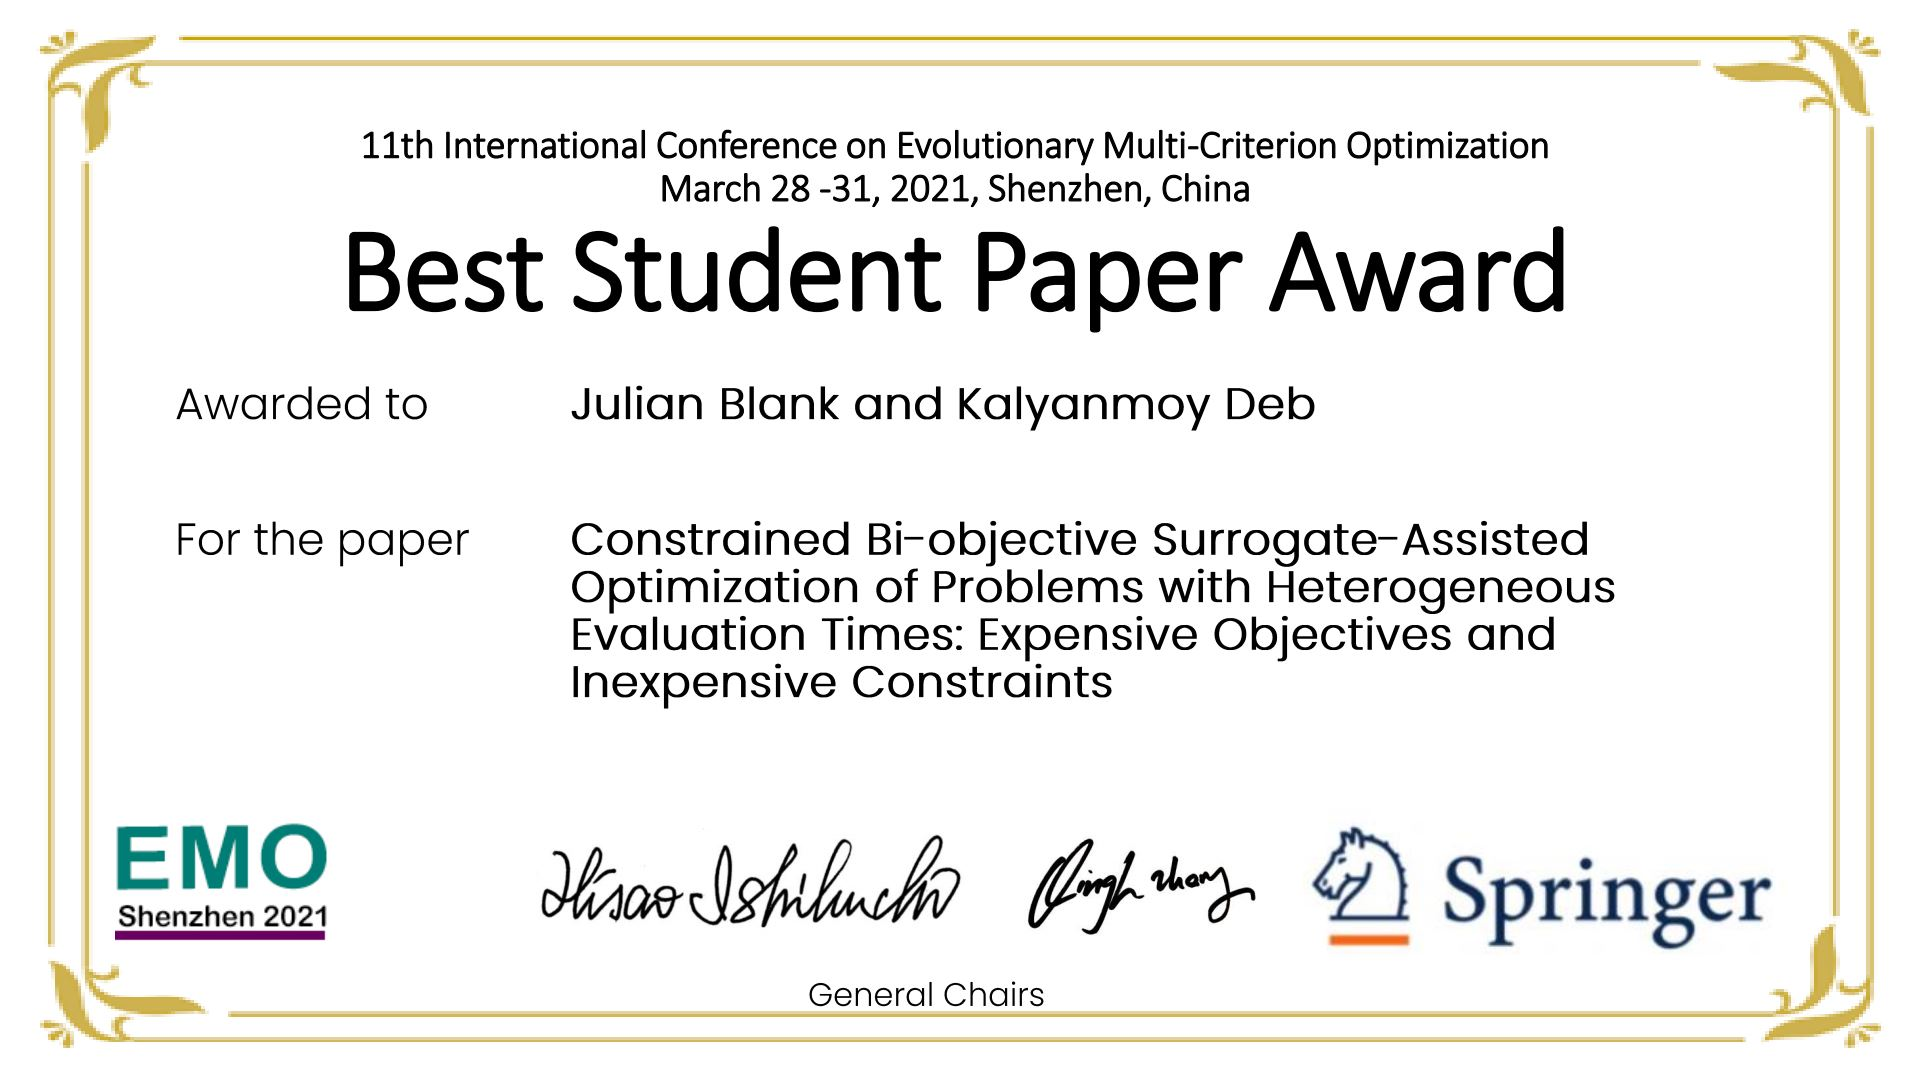 Constrained Bi-objective Surrogate-Assisted Optimization best paper award